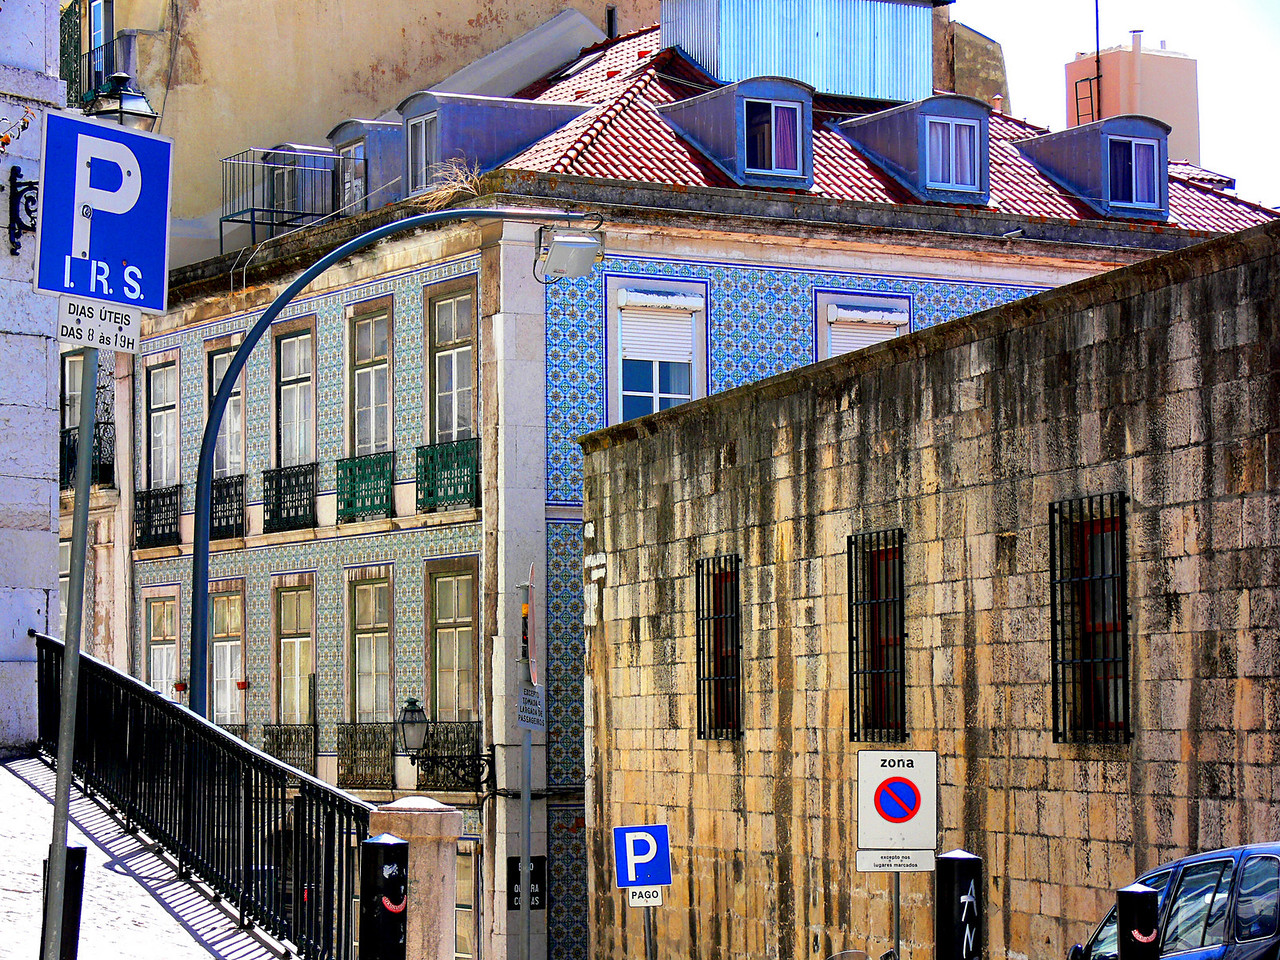 Portugese Tiled building, Lisbon, Portugal